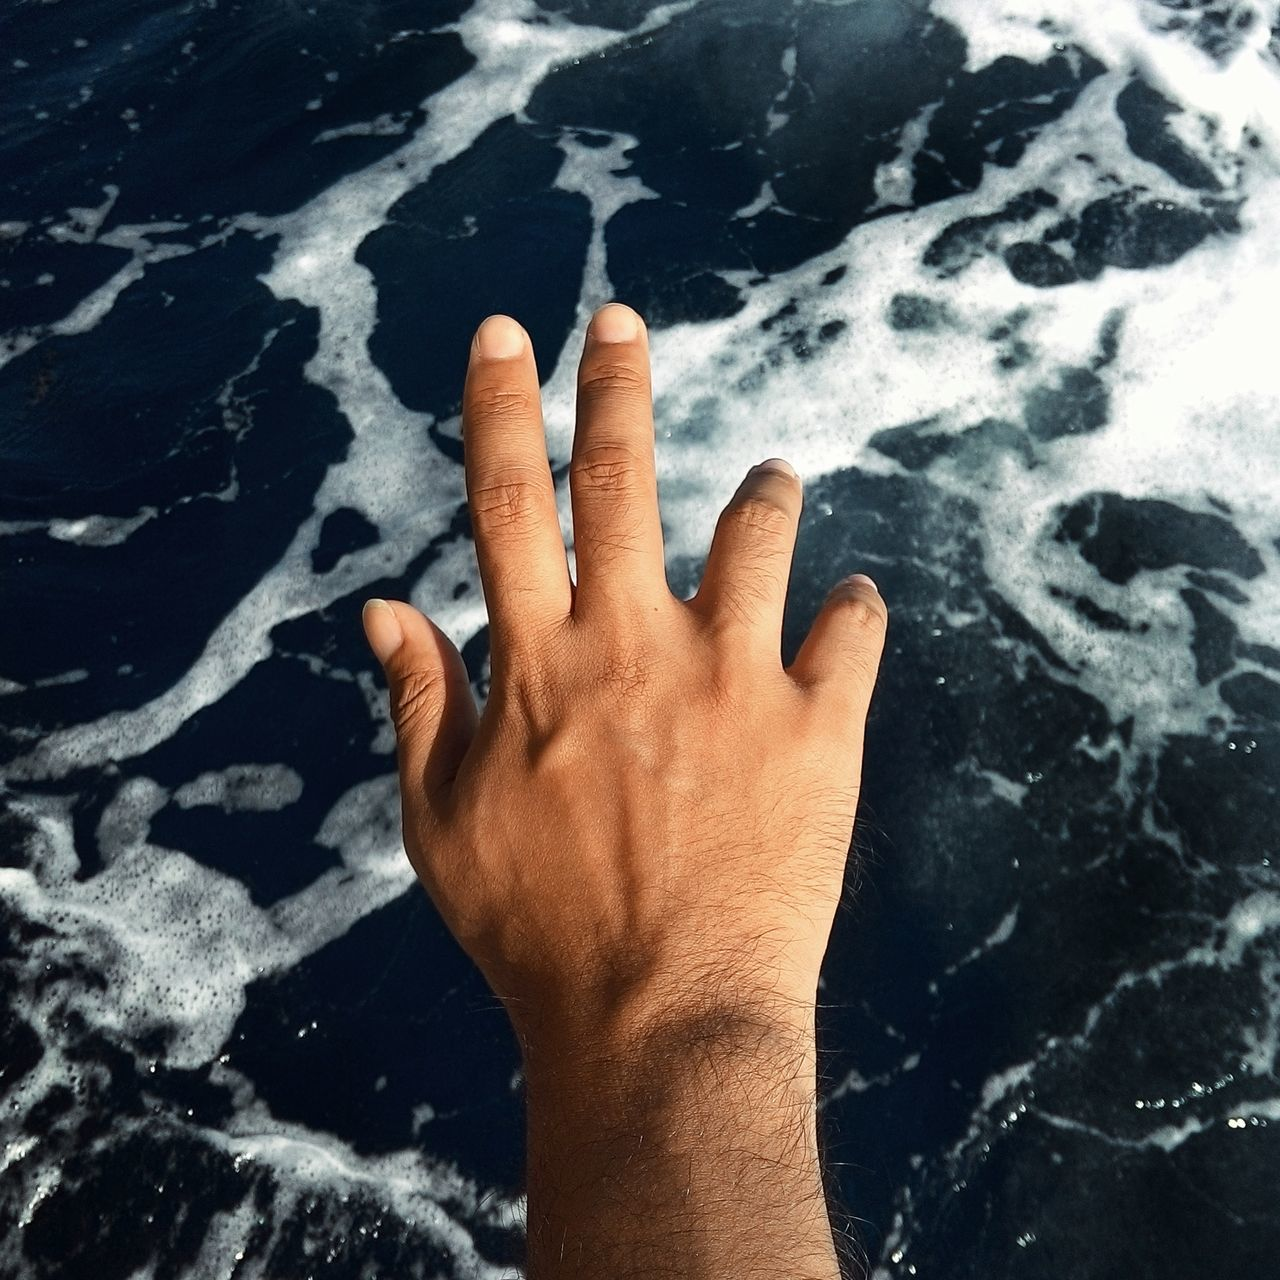 human hand, human body part, real people, human finger, one person, personal perspective, leisure activity, close-up, outdoors, day, nature, people